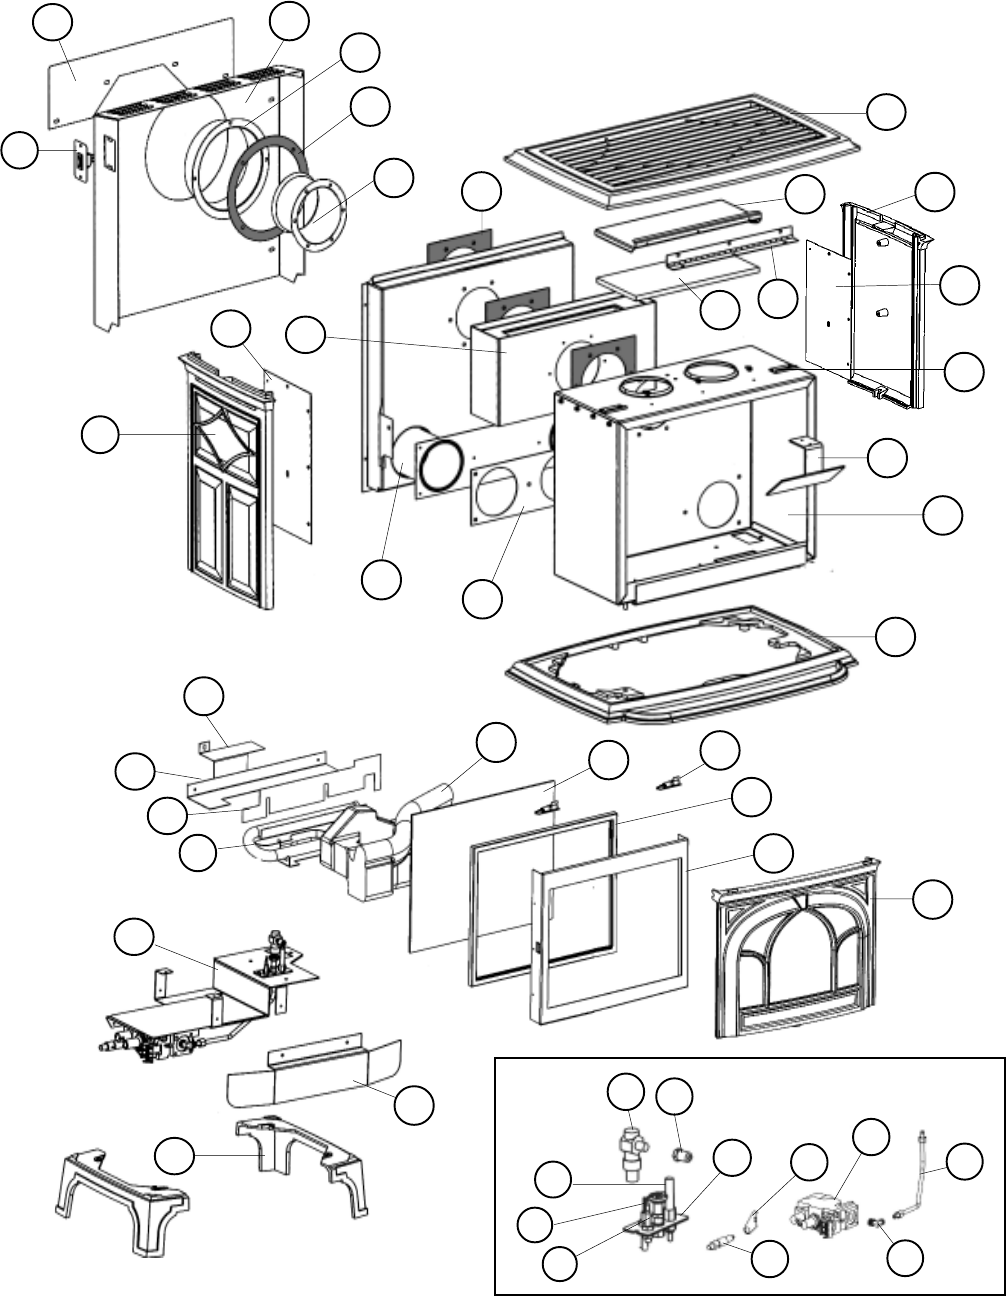 Heat Surge Electric Fireplace Wiring Diagram additionally Rth2310b Wiring Diagram moreover Outside Wood Boilers Canada page 7 besides Fire Chief Wood Furnace Wiring Diagram furthermore Hot Water Tank Thermostat Wiring. on wood stove thermostat wiring diagram